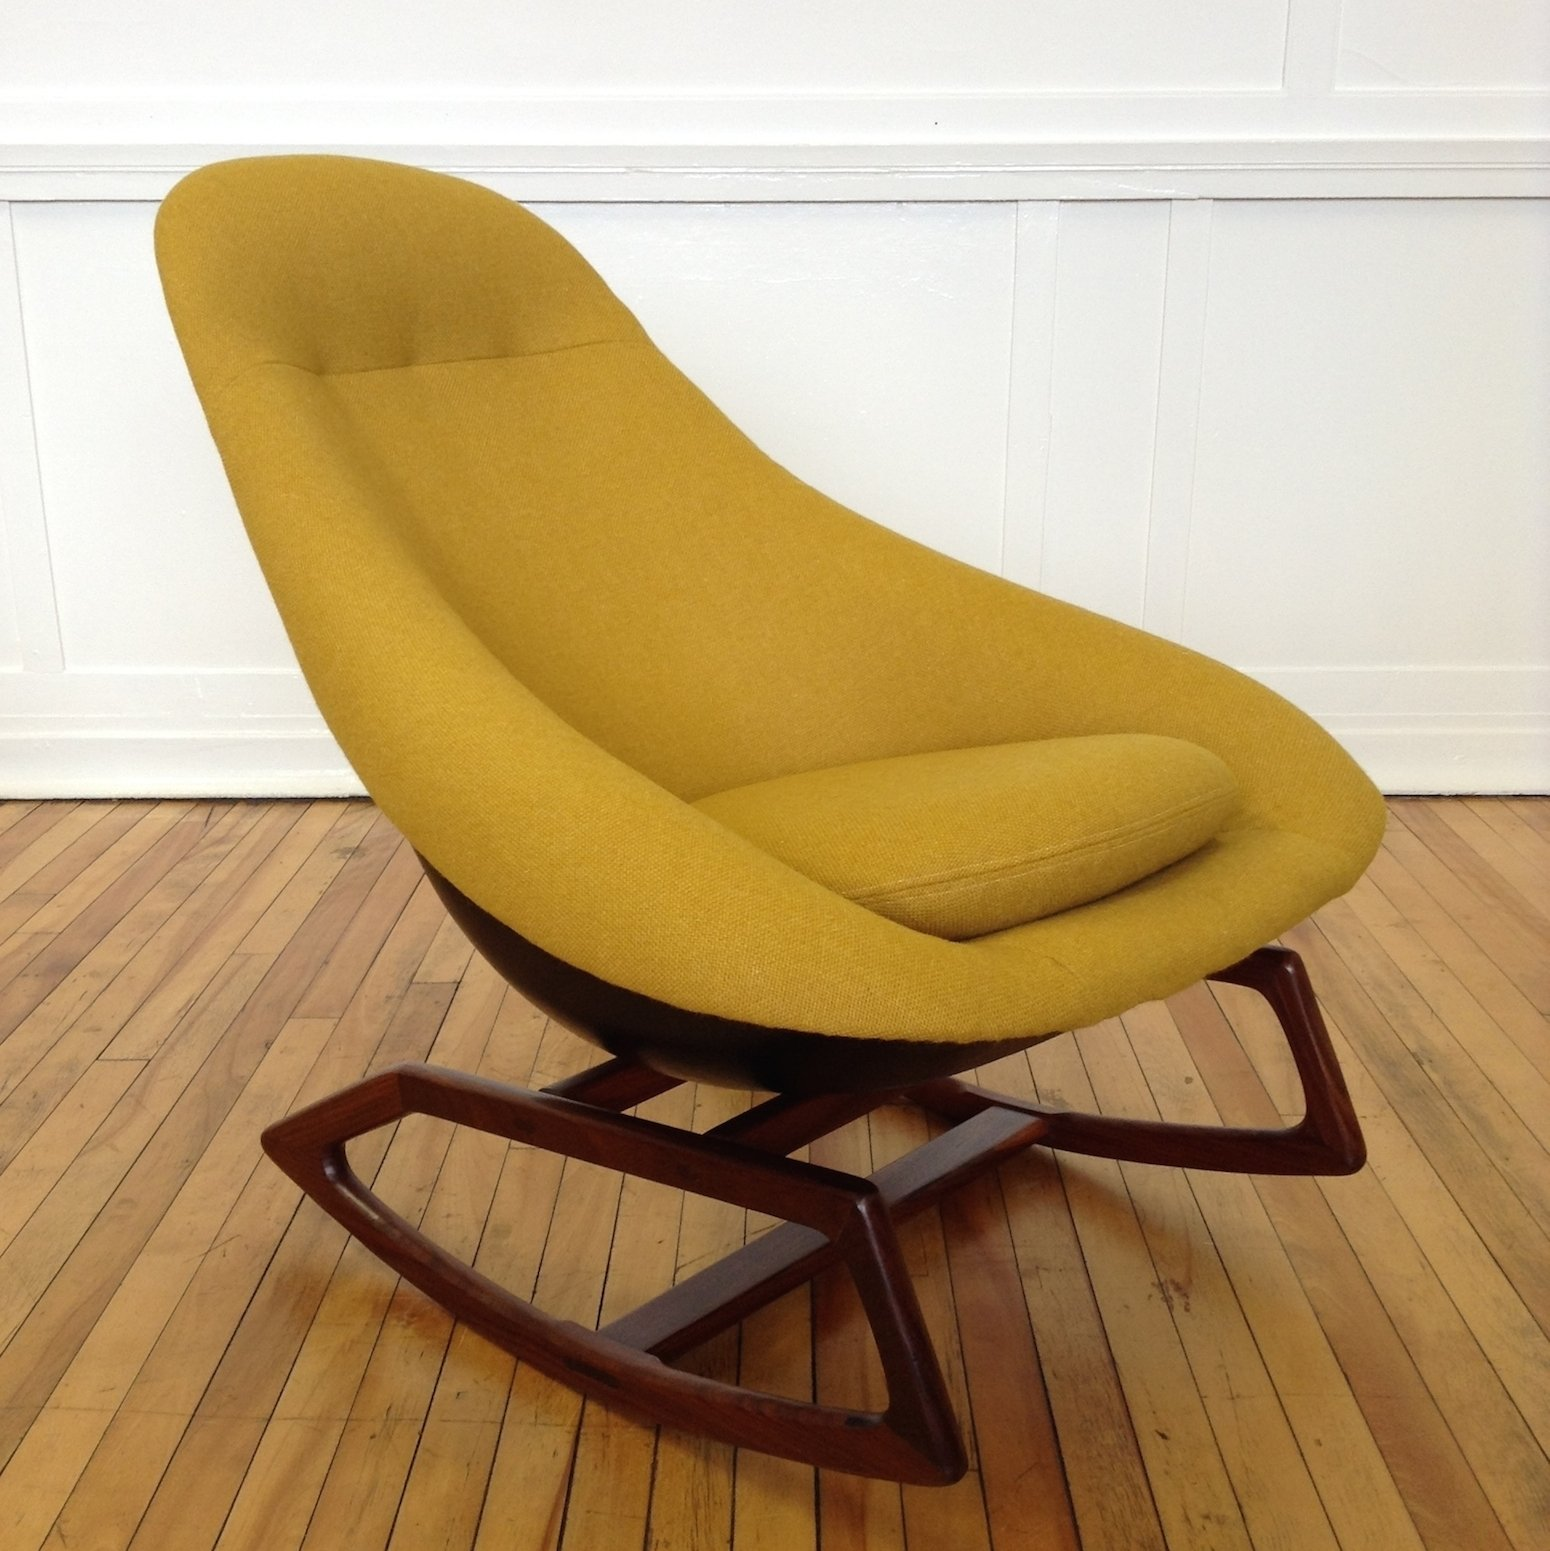 red furniture yellow chair modern chairs buy for armchair mid rocking lounge century contemporary sale